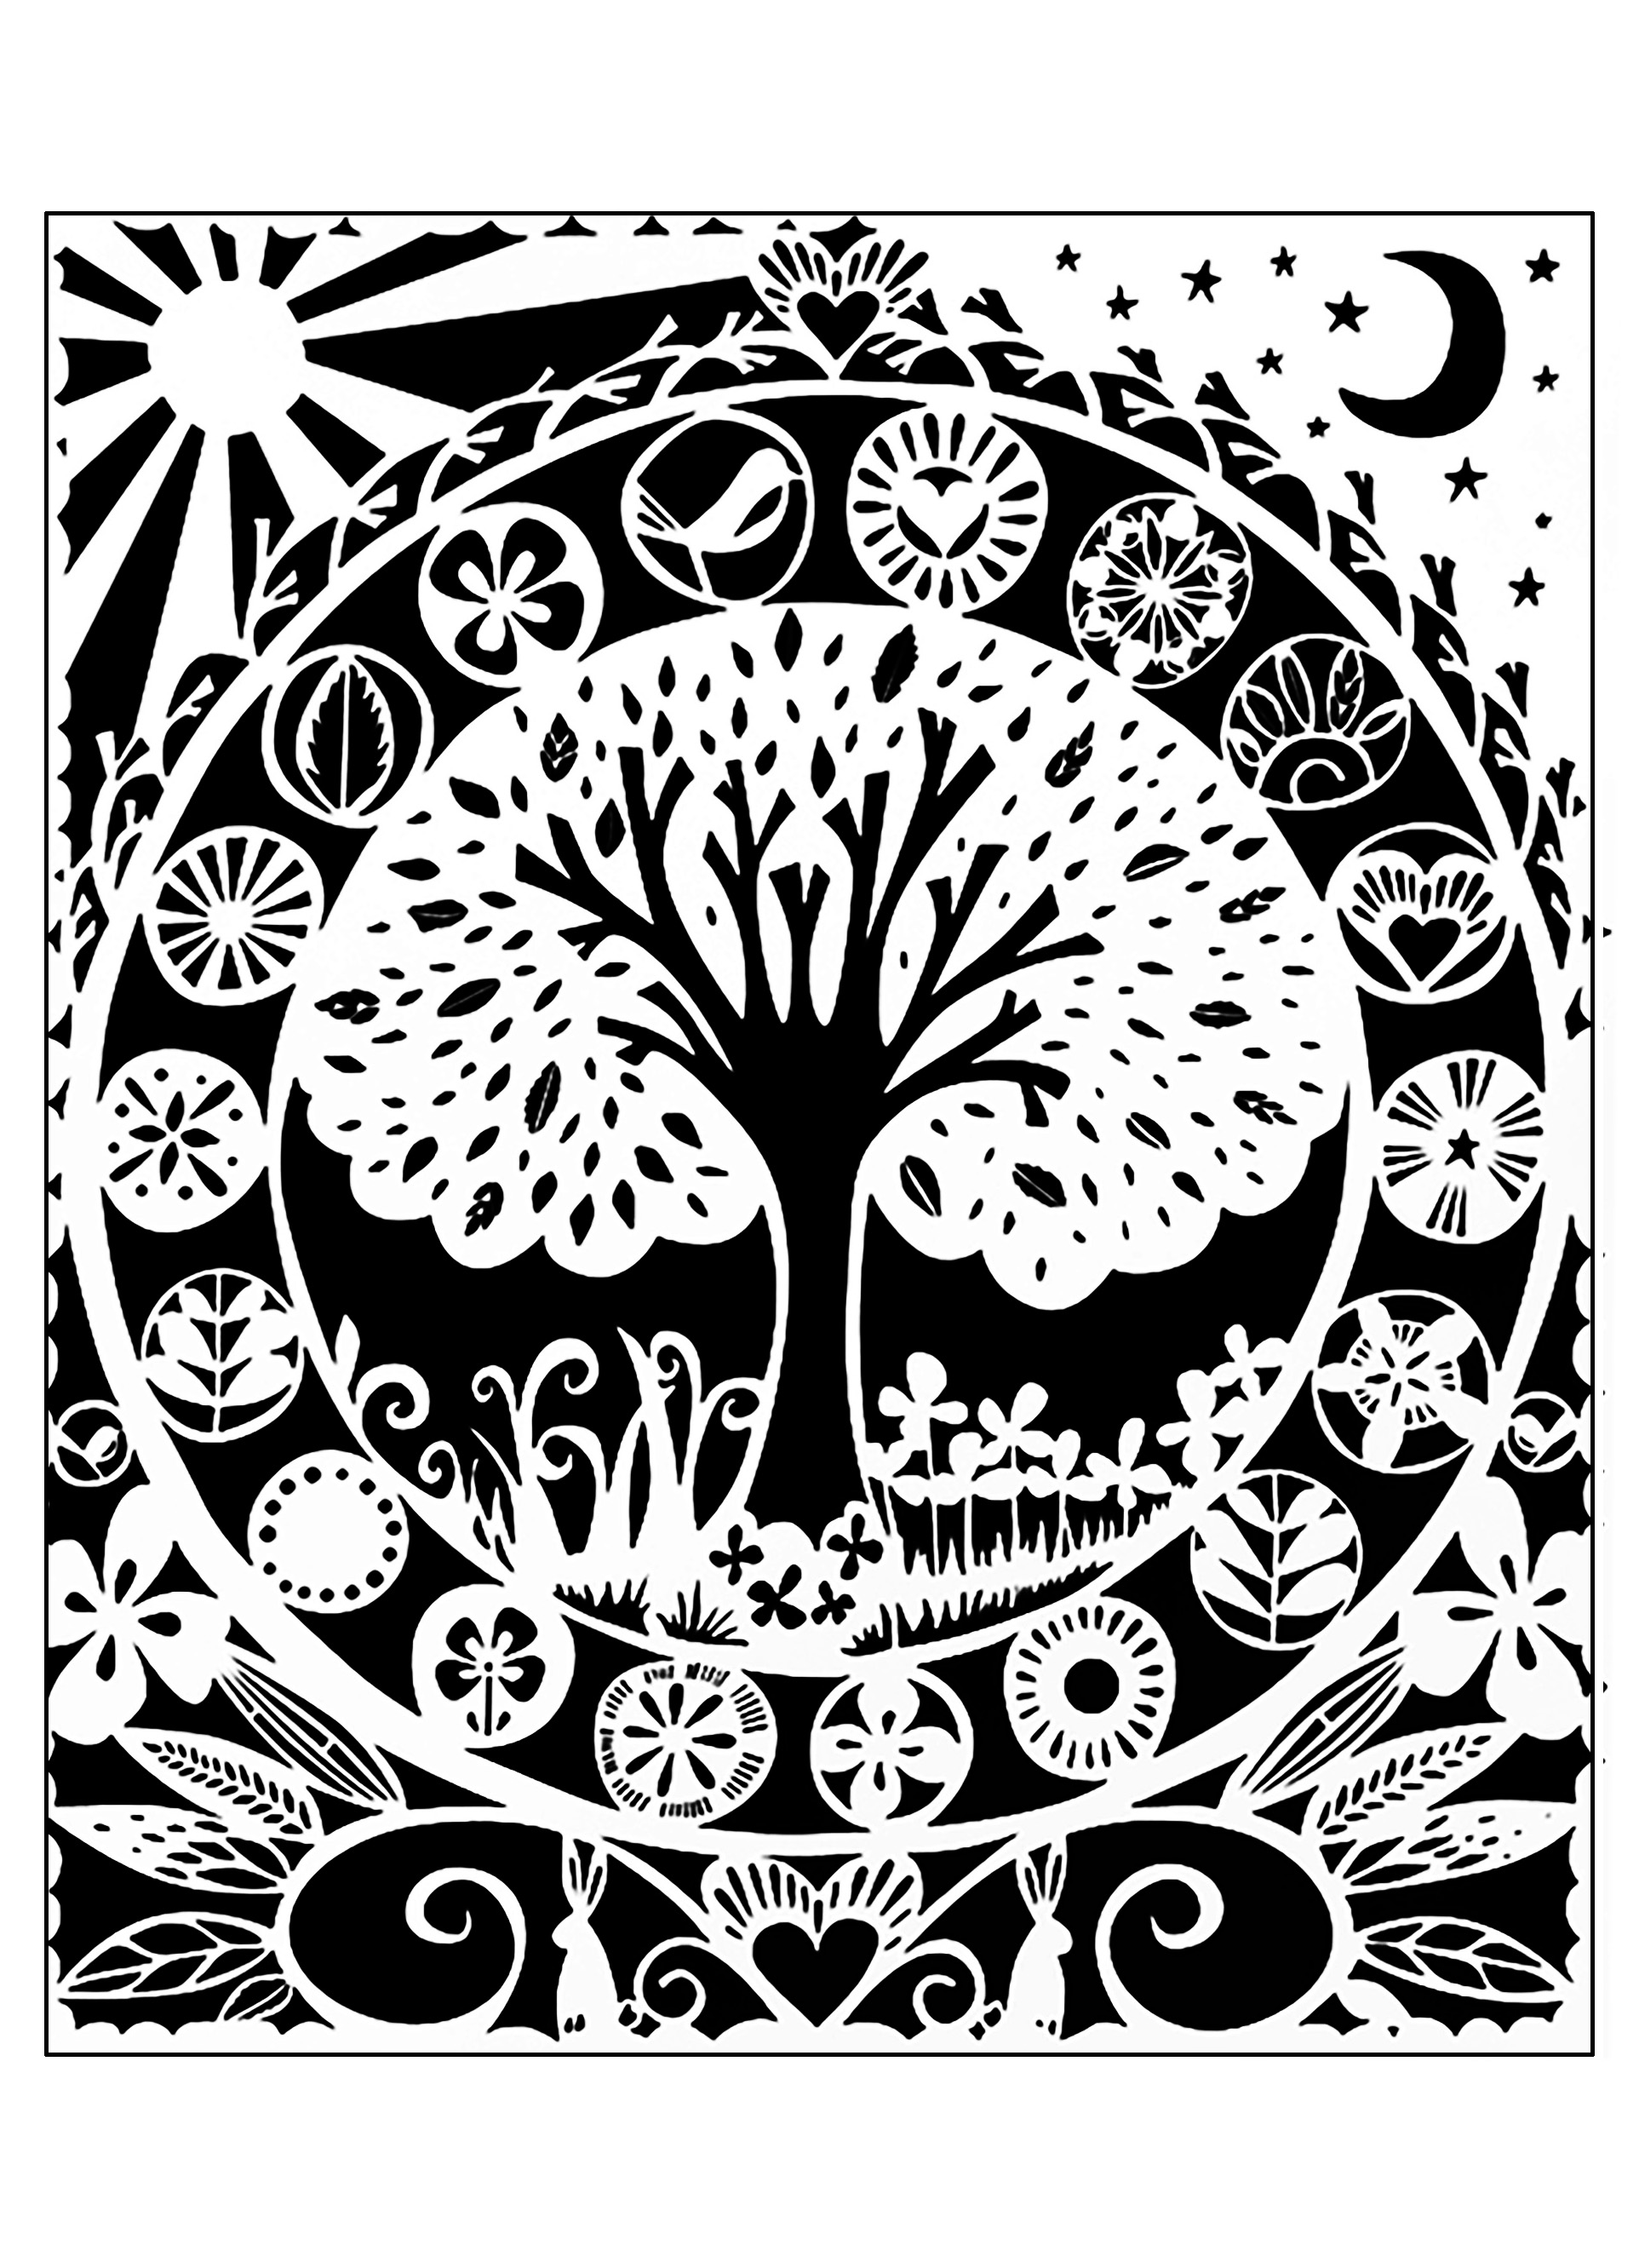 black and white coloring pages for adults coloring pages coloring book printable black and white pages coloring adults white for and black